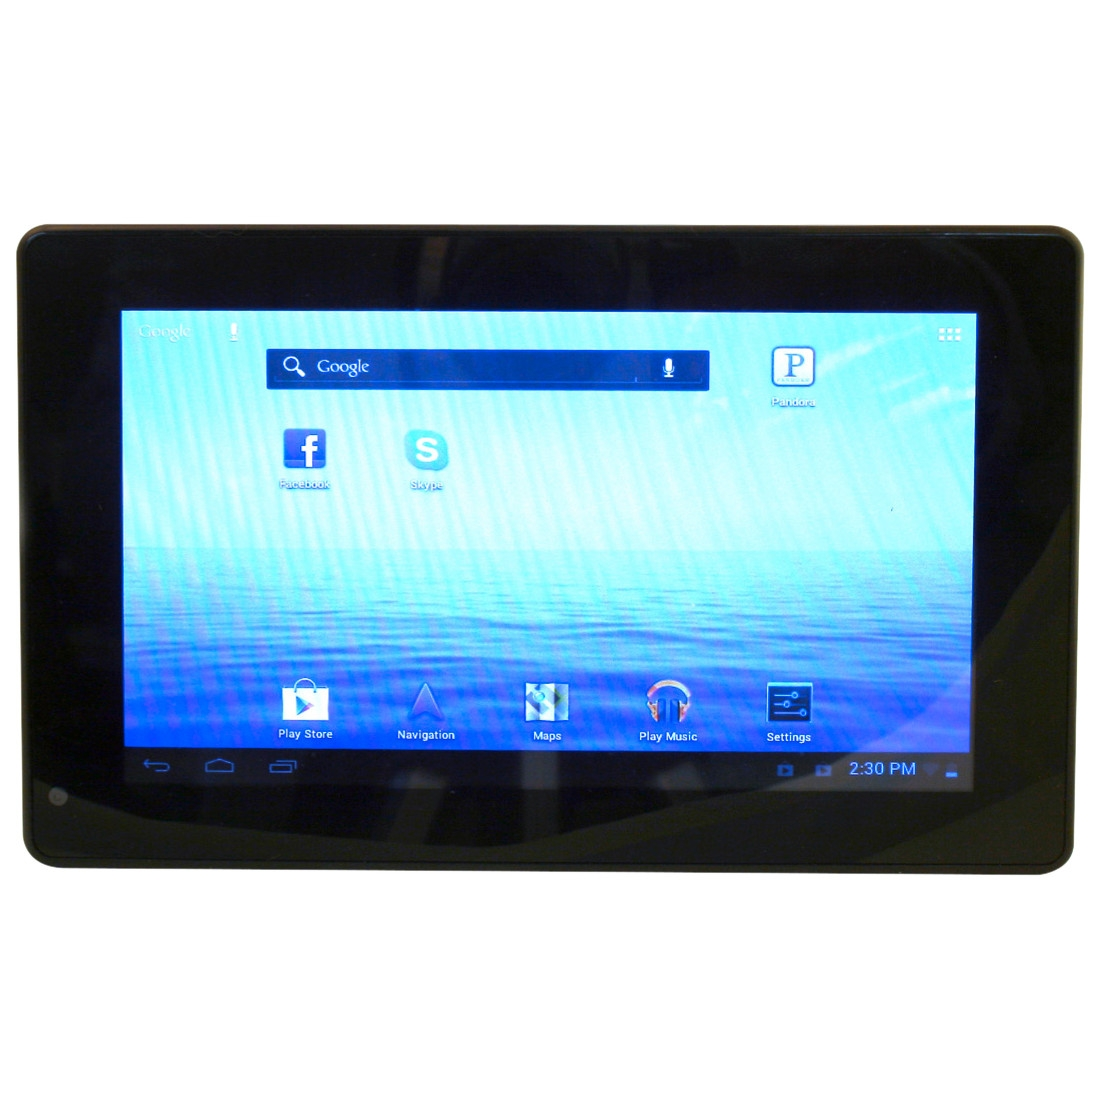 "Yifang NEXT7P12 with WiFi 7"" Touchscreen Tablet PC Featuring Android 4.0 (Ice Cream Sandwich) Operating System, Black"